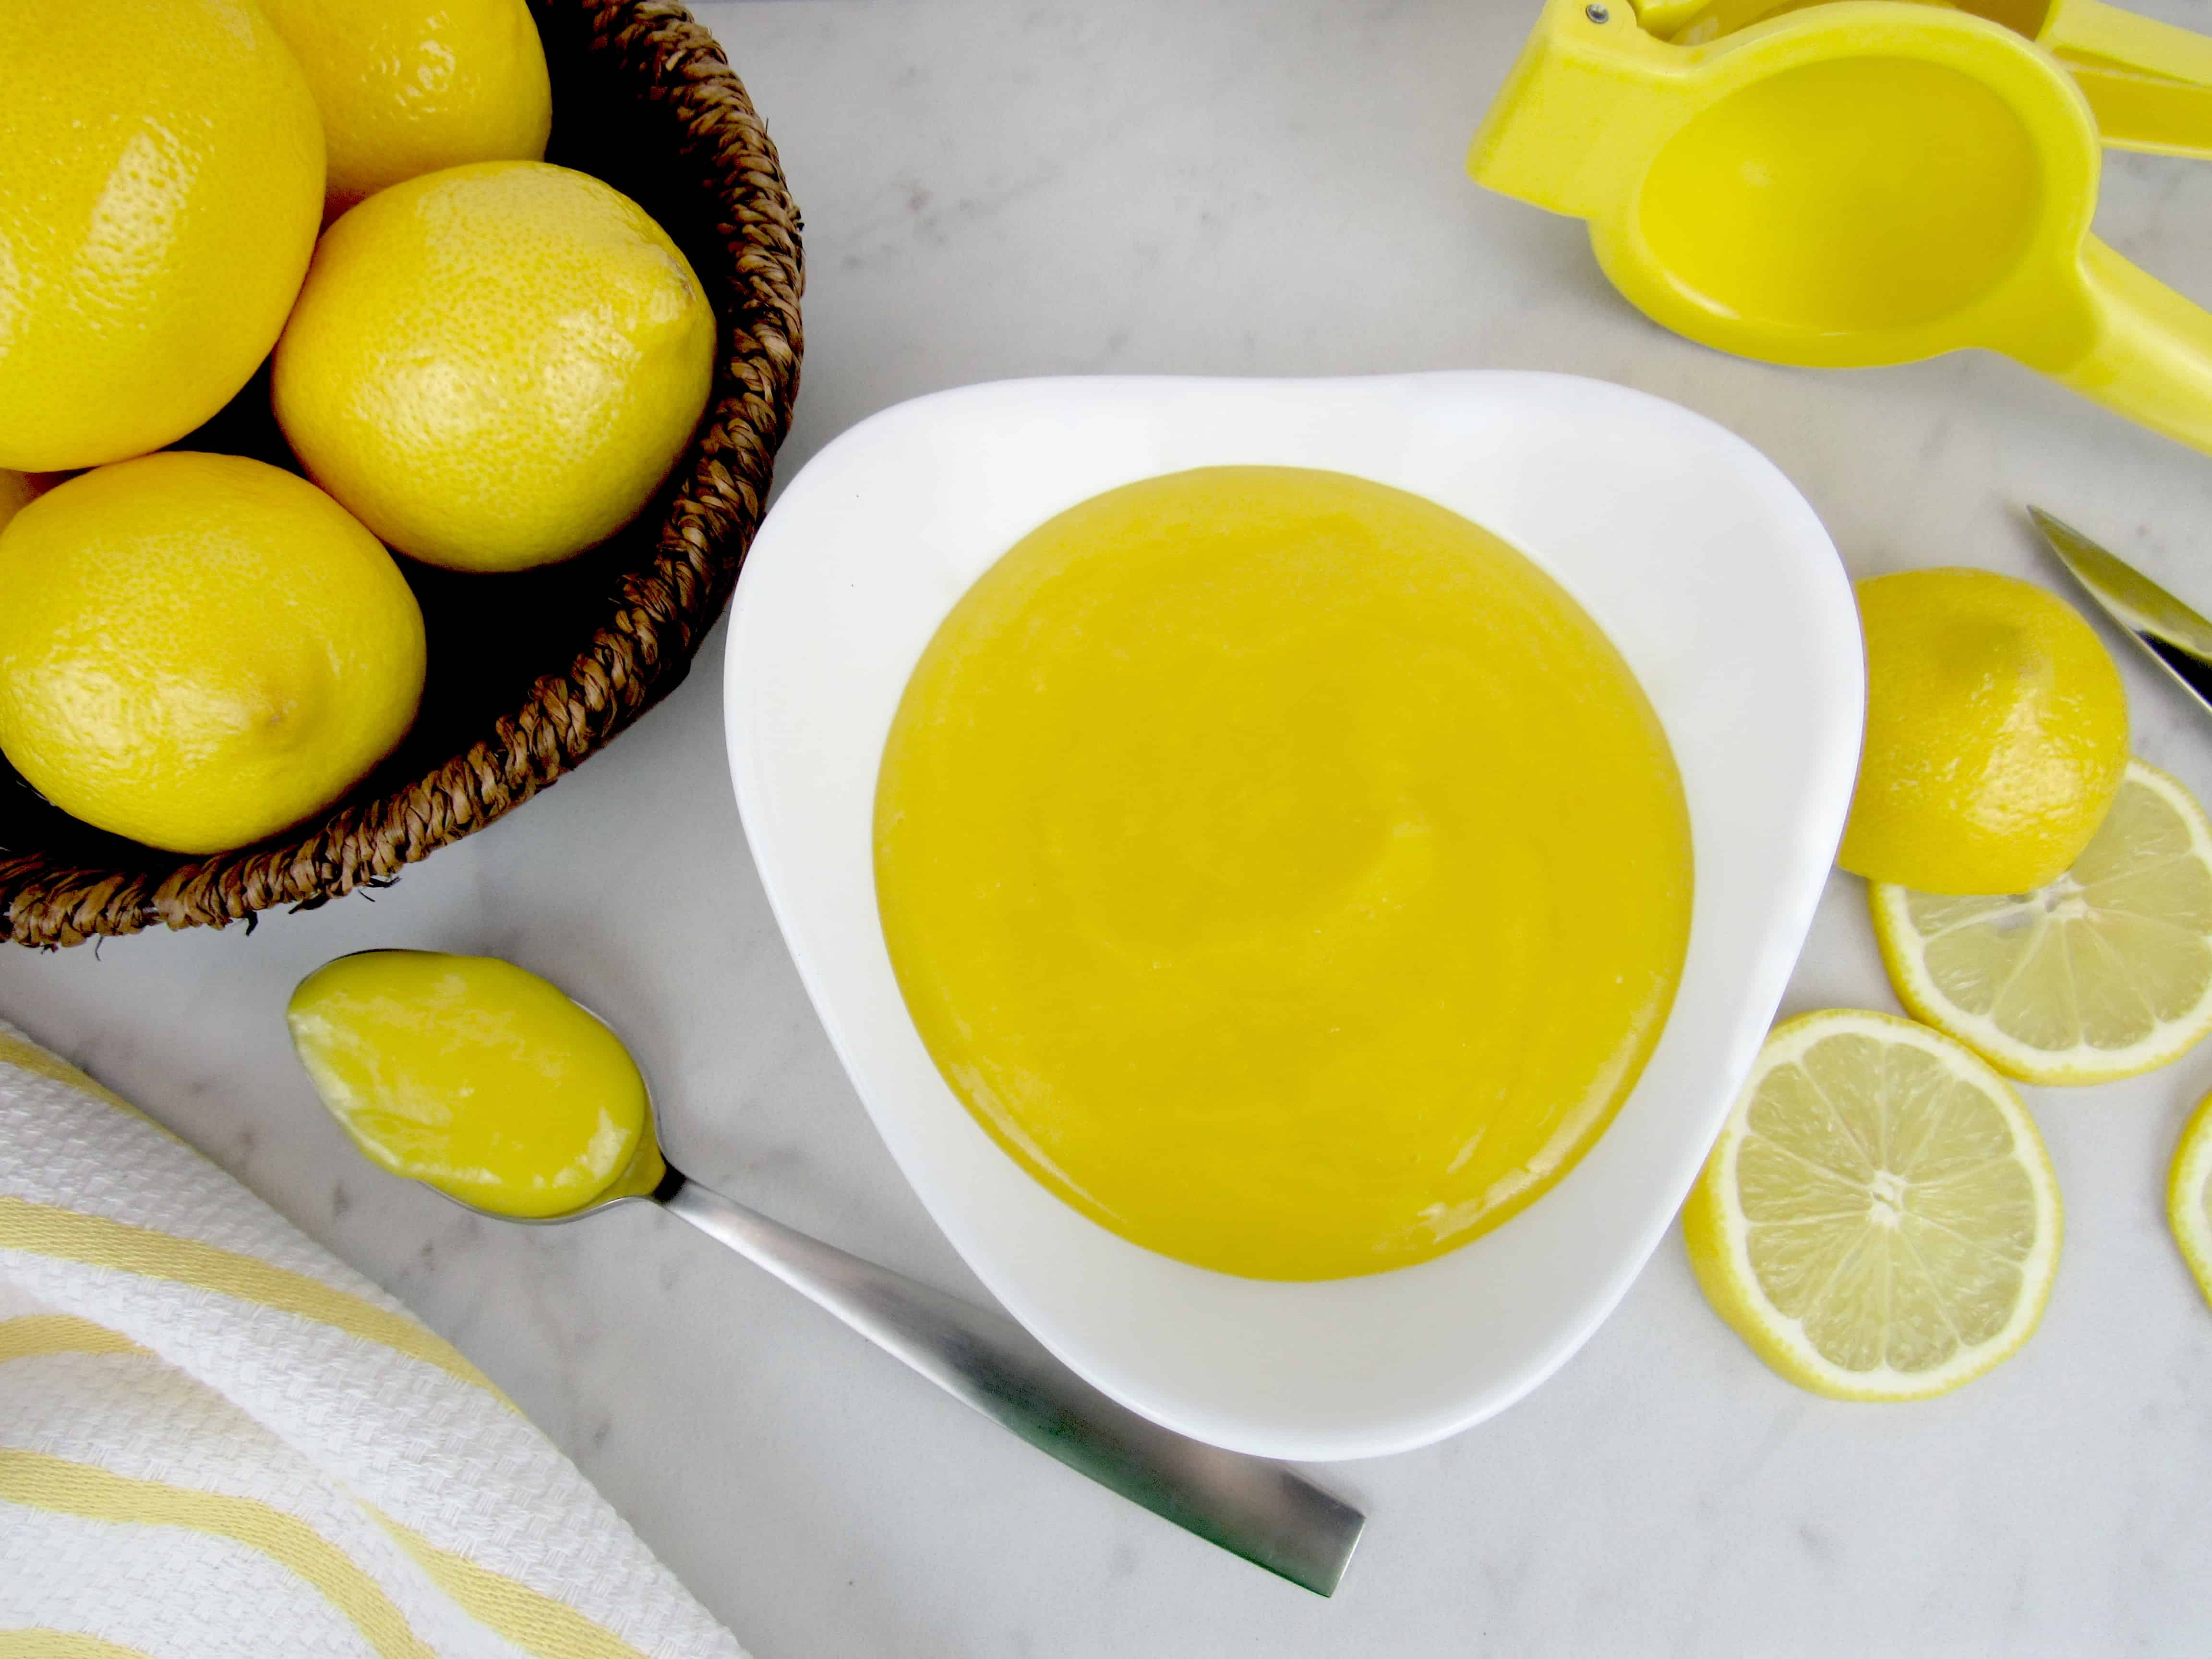 5 Minute Microwave Lemon Curd - Keto and Low Carb